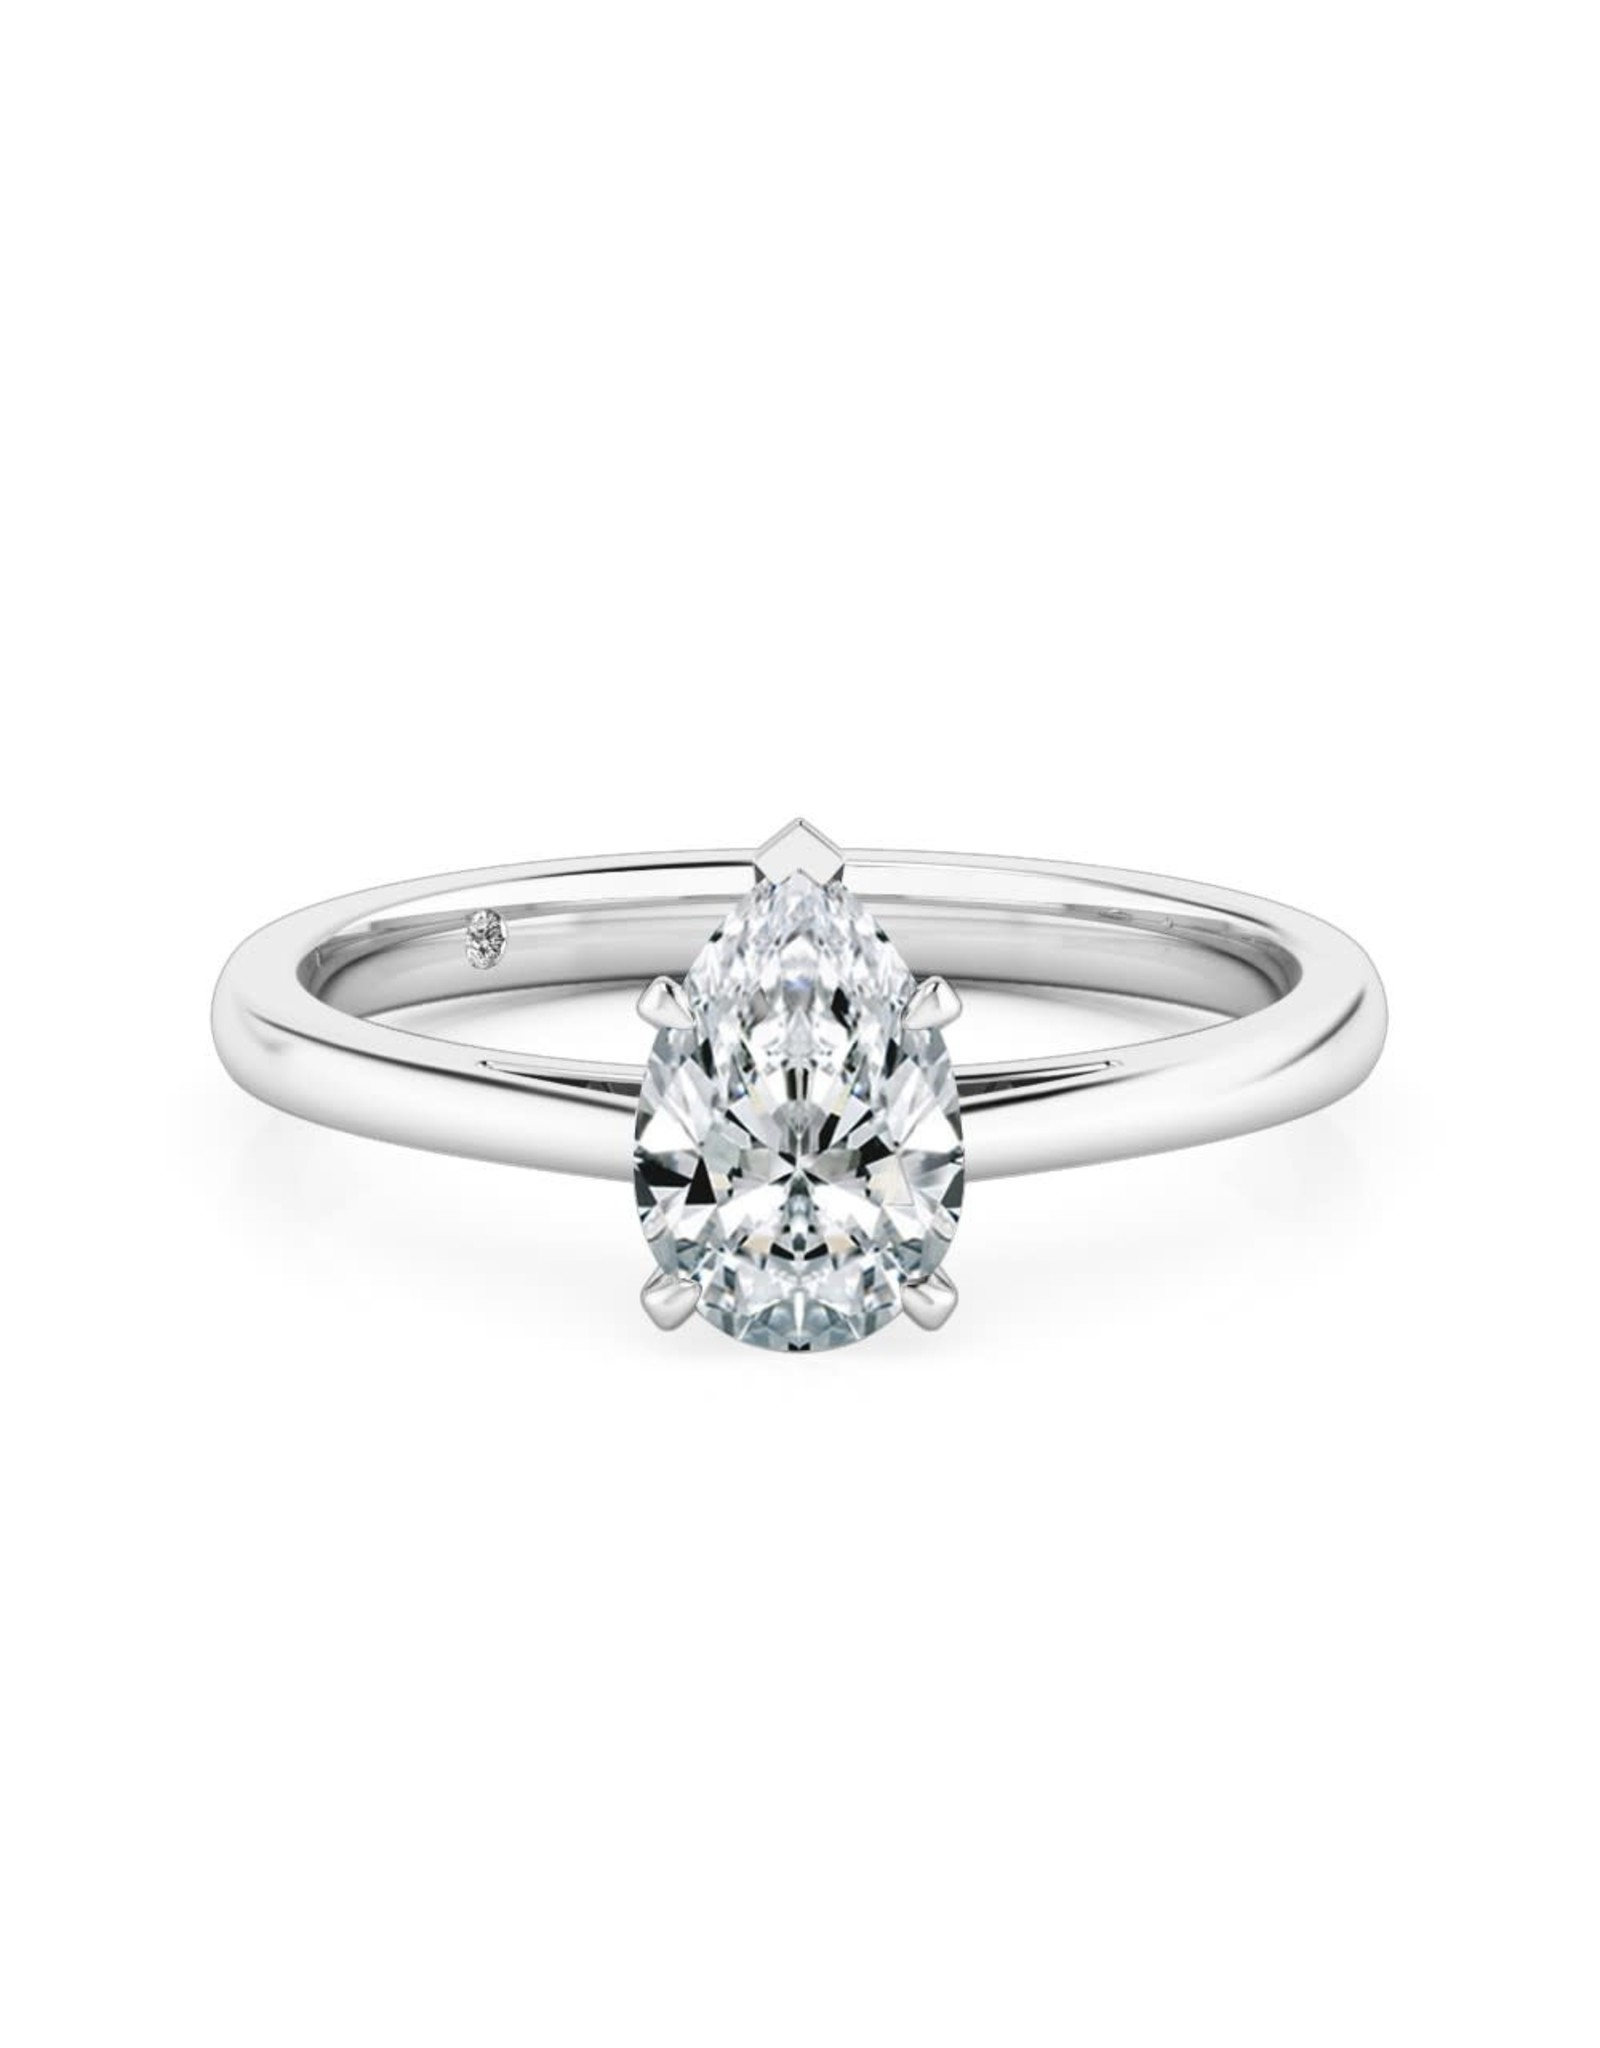 14K White Gold Pear Shaped Solitaire Engagement Ring, D: 1.43ct,  G, Si3